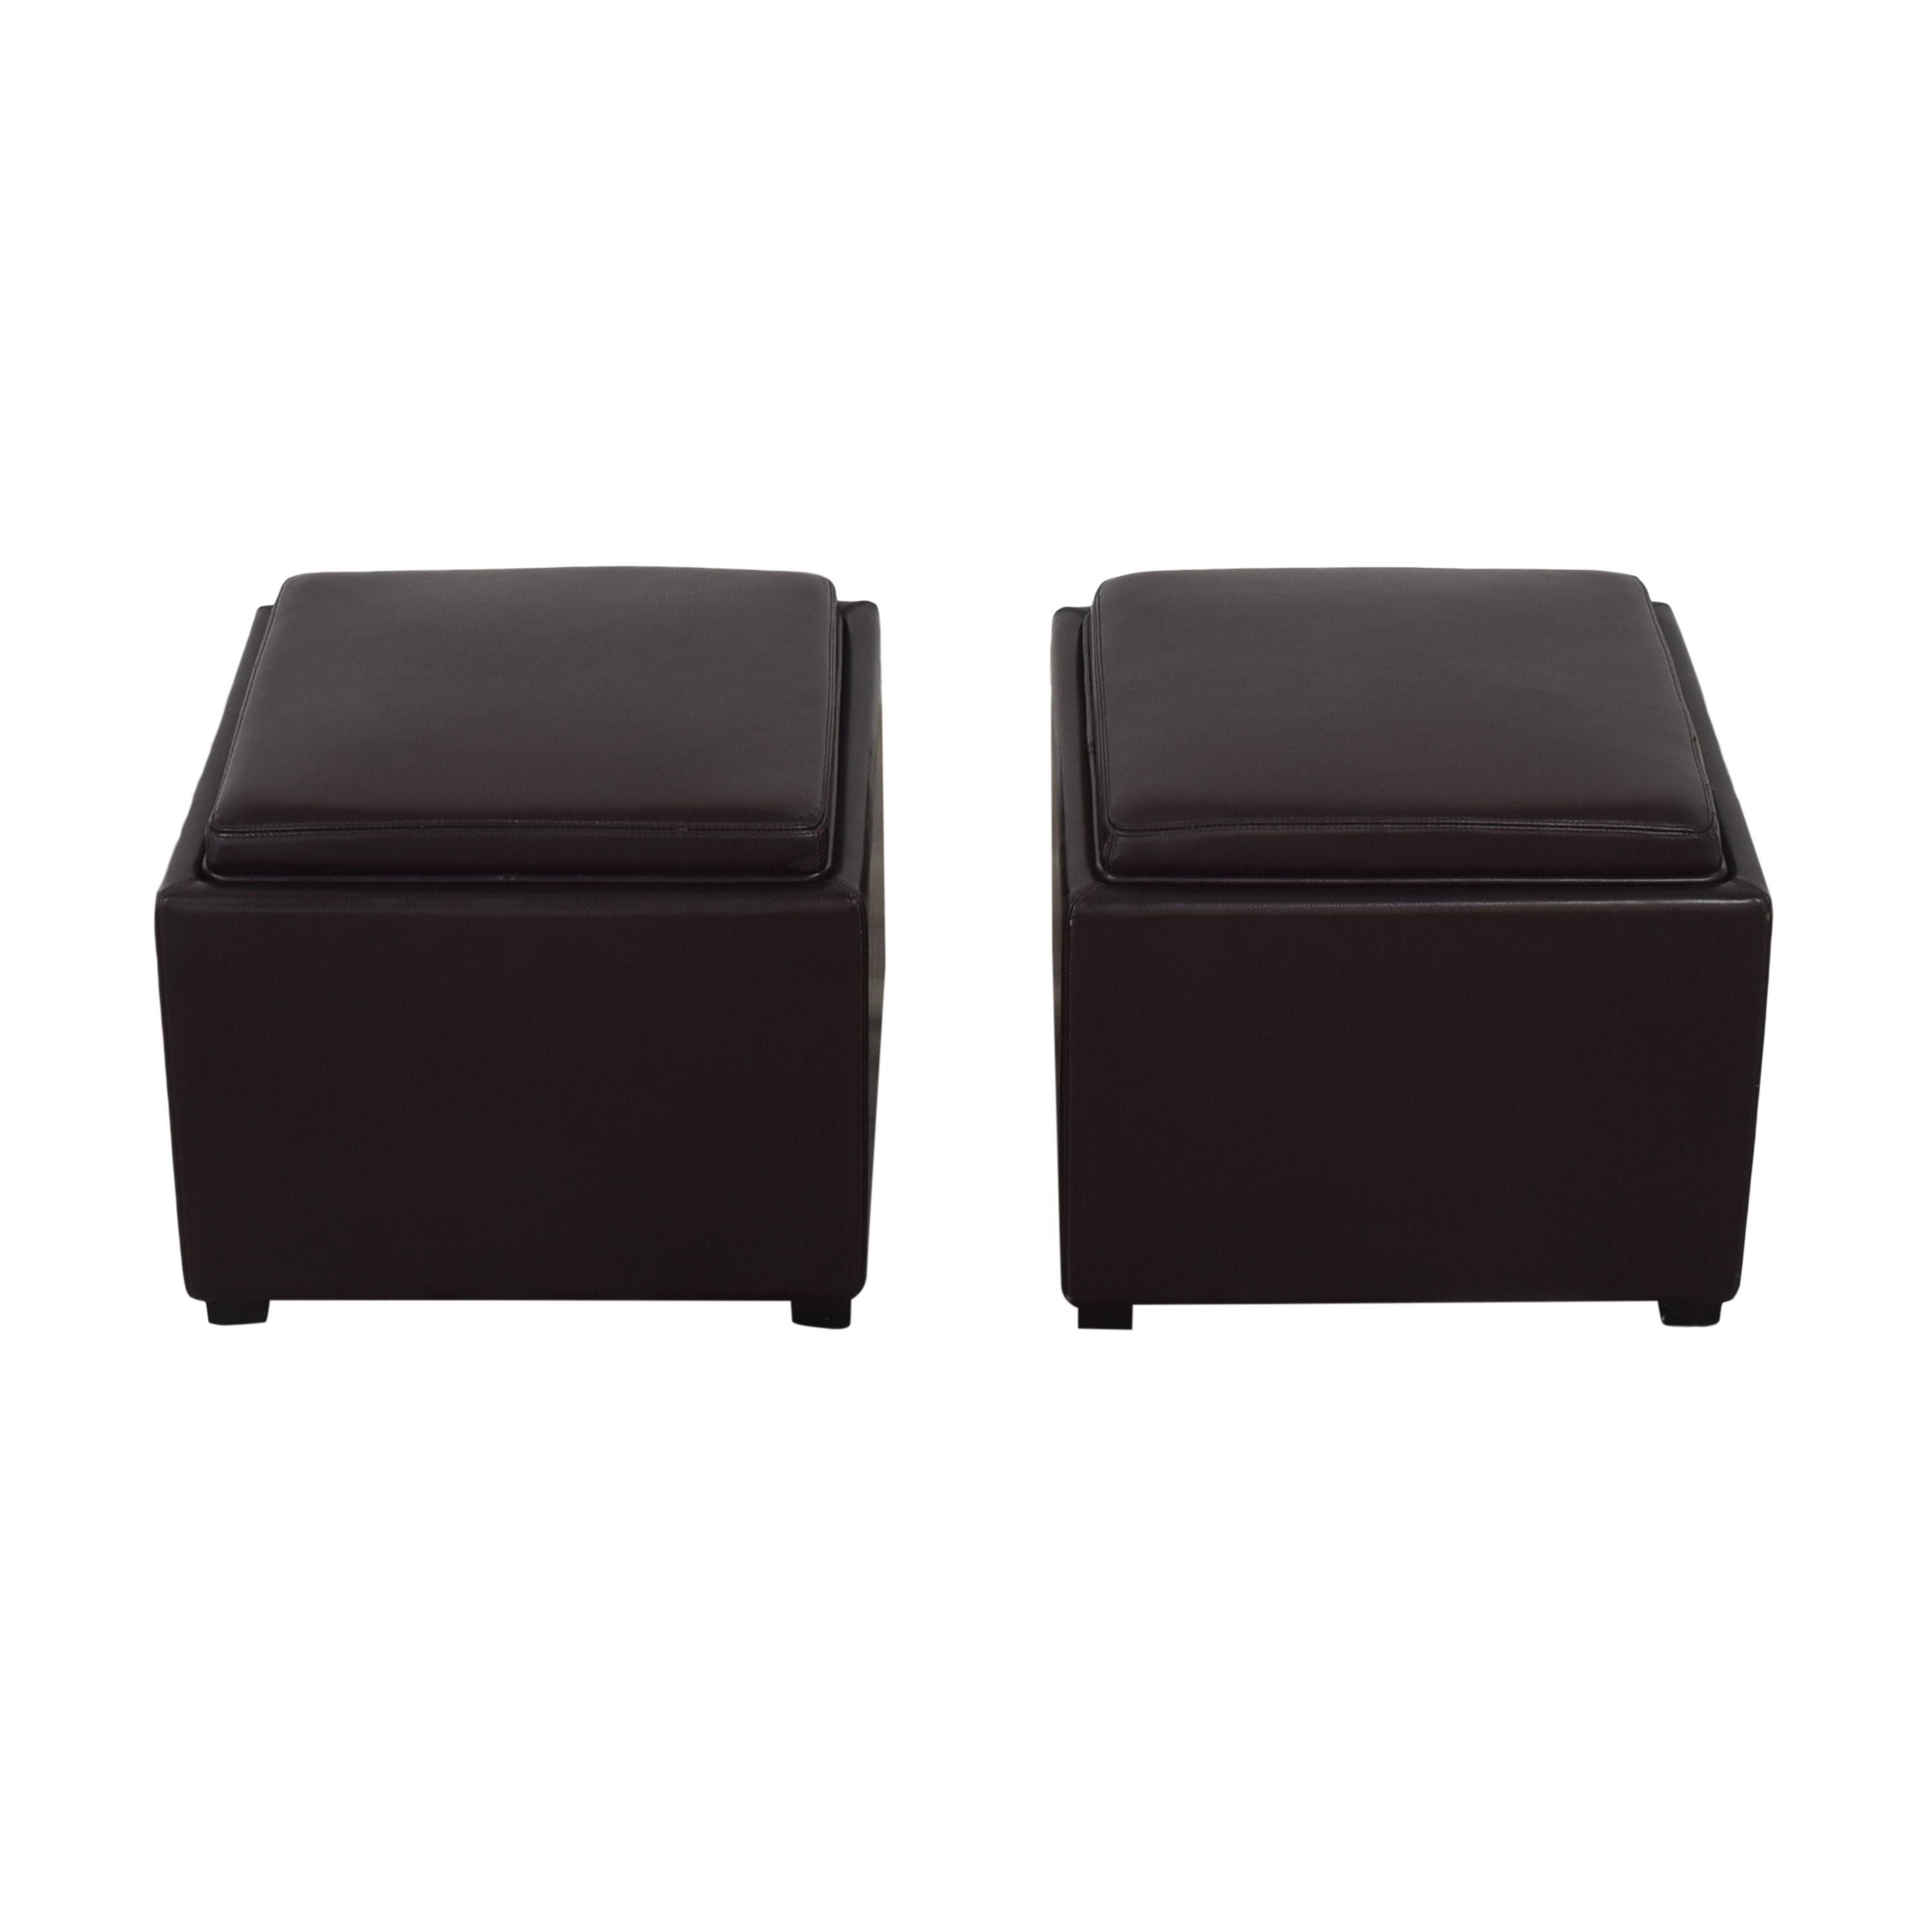 Crate & Barrel Stow Ottomans with Storage / Chairs